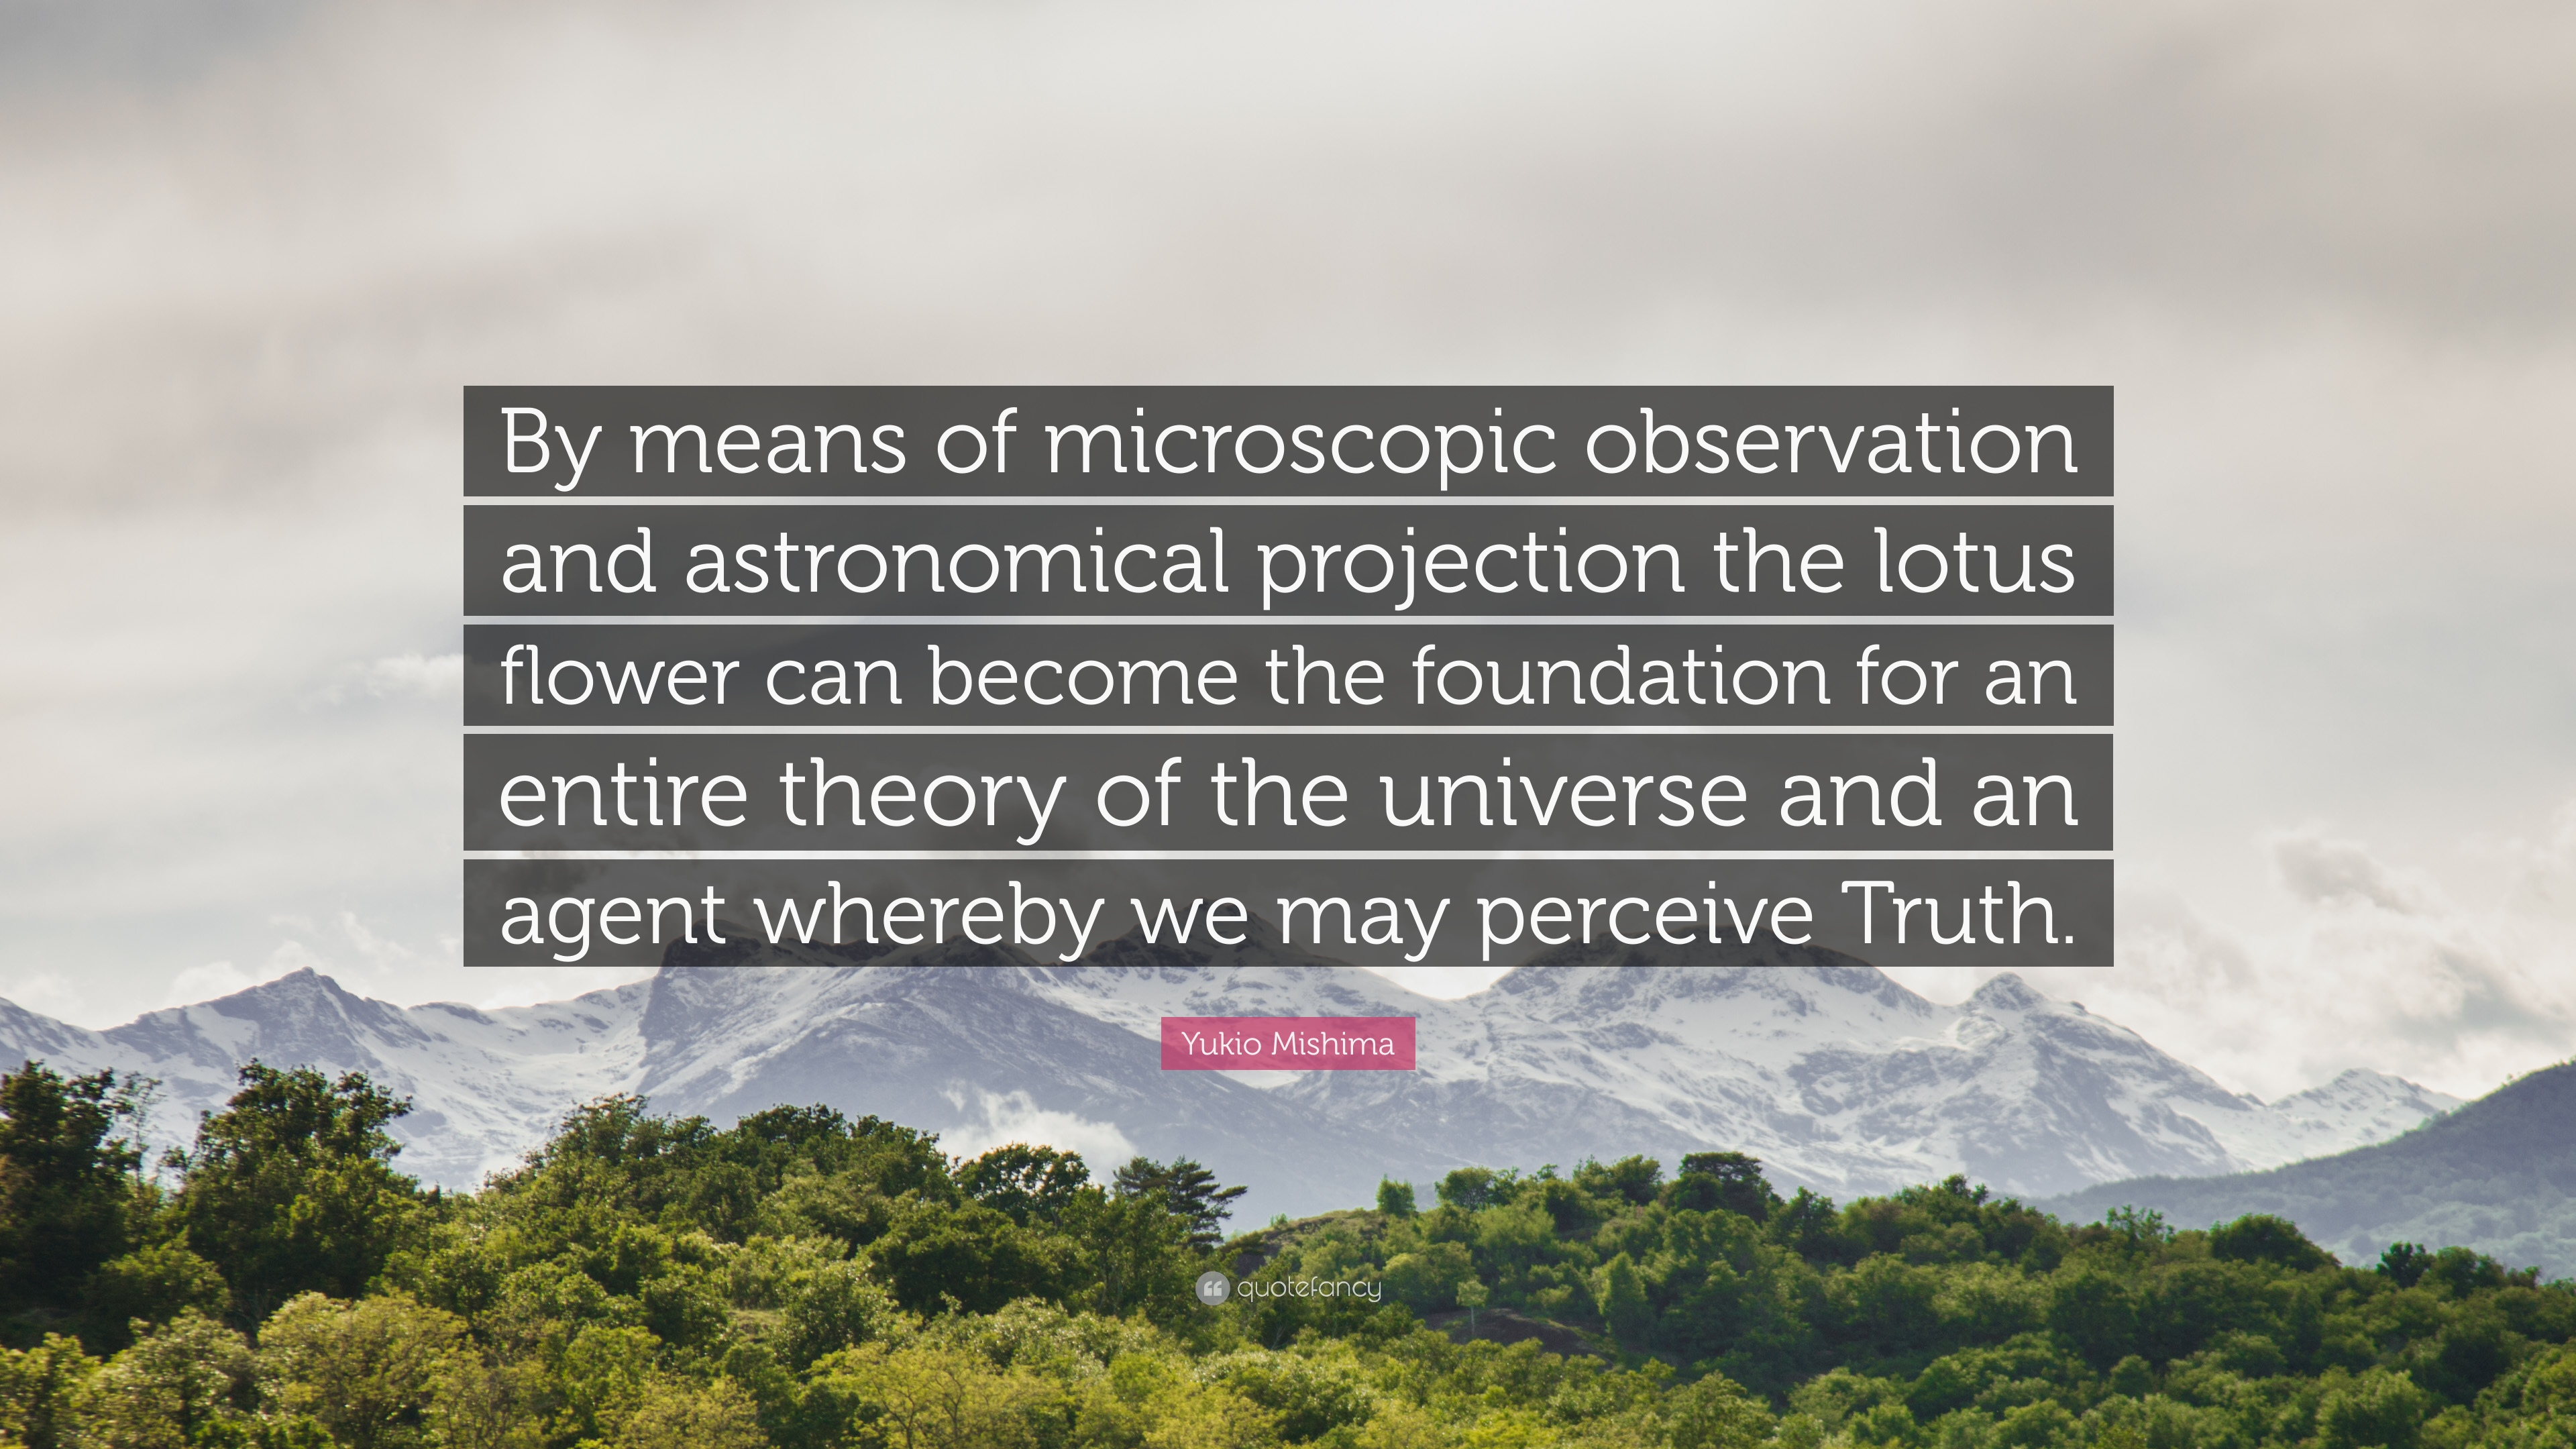 Yukio Mishima Quote By Means Of Microscopic Observation And